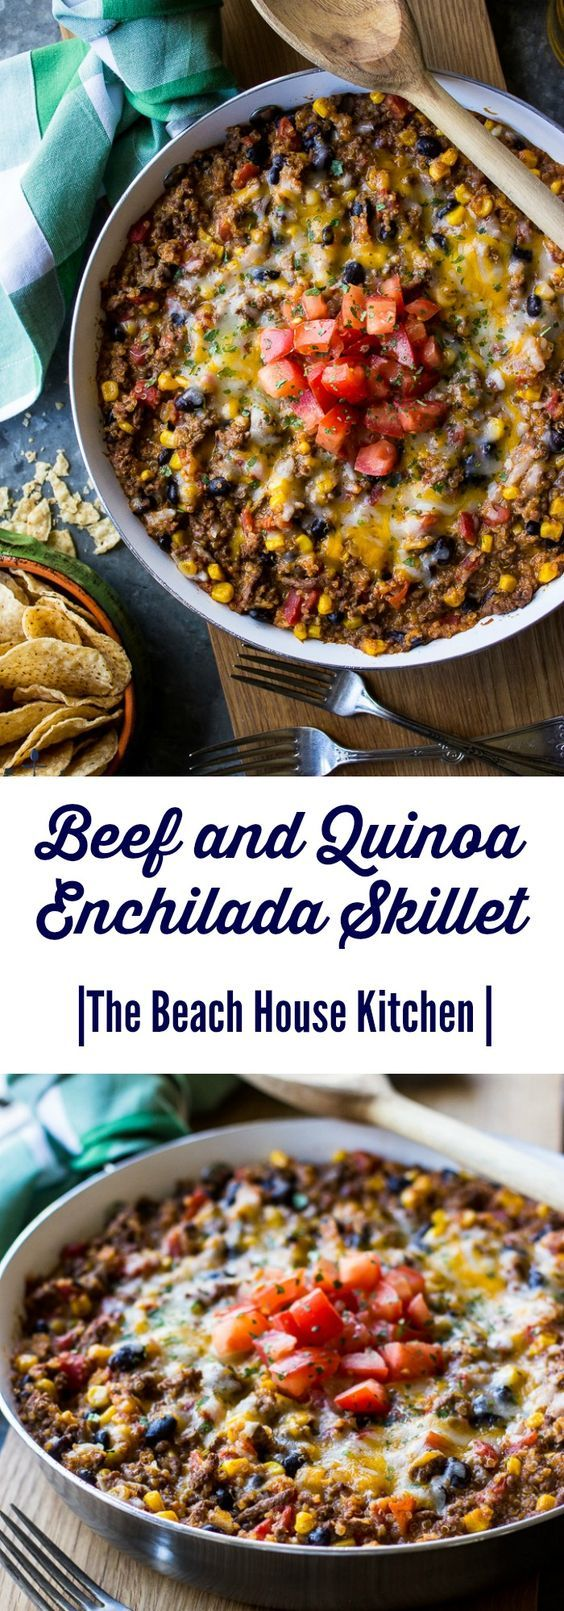 Mexican Paste Beef and Quinoa Enchilada Skillet   The Beach House Kitchen